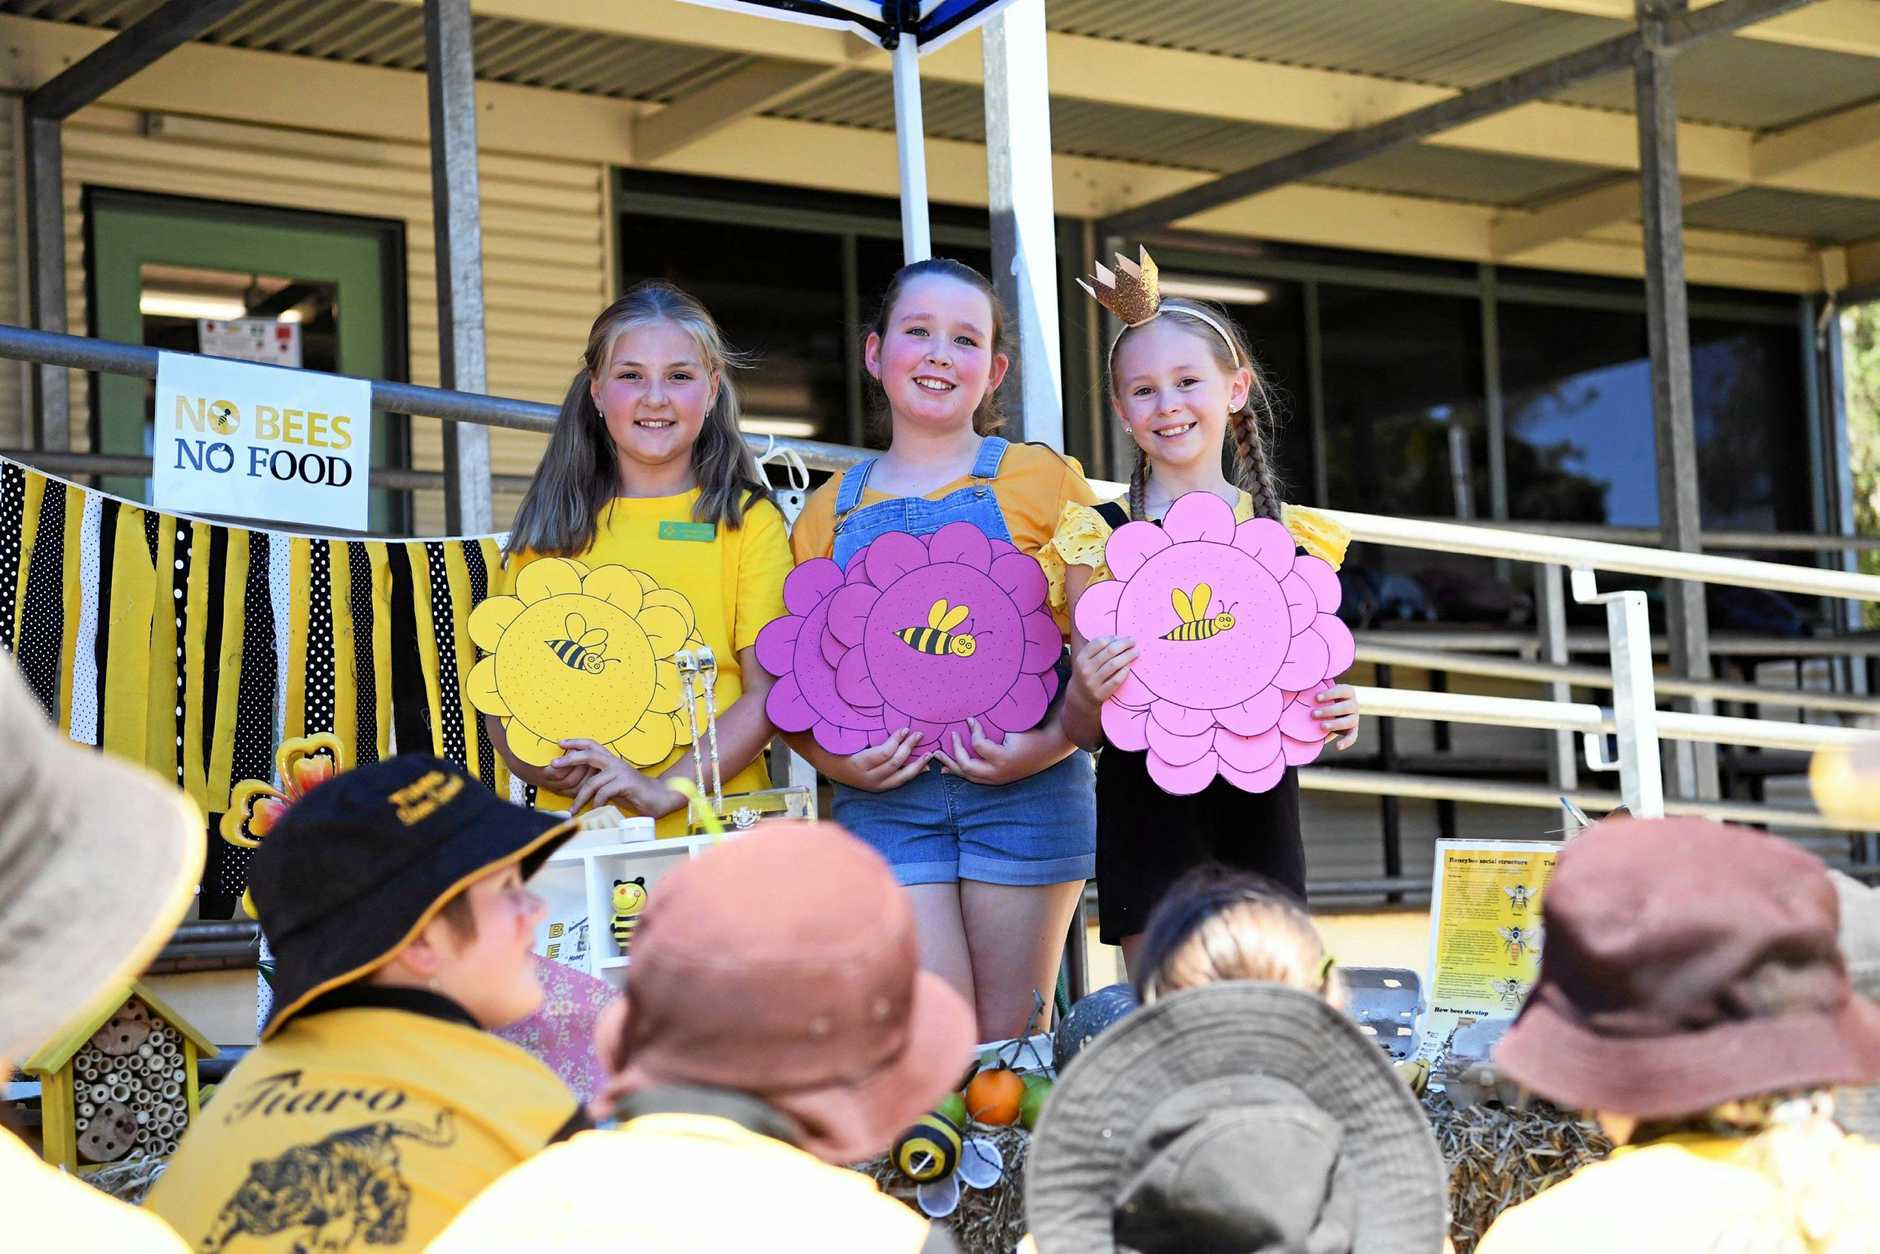 Kids teaching kids - Year 4 students (L) Shelby Box, Jaylee Pearse and Xanthe Schjivens teaching other kids about the importance of bees in our ecosystem.